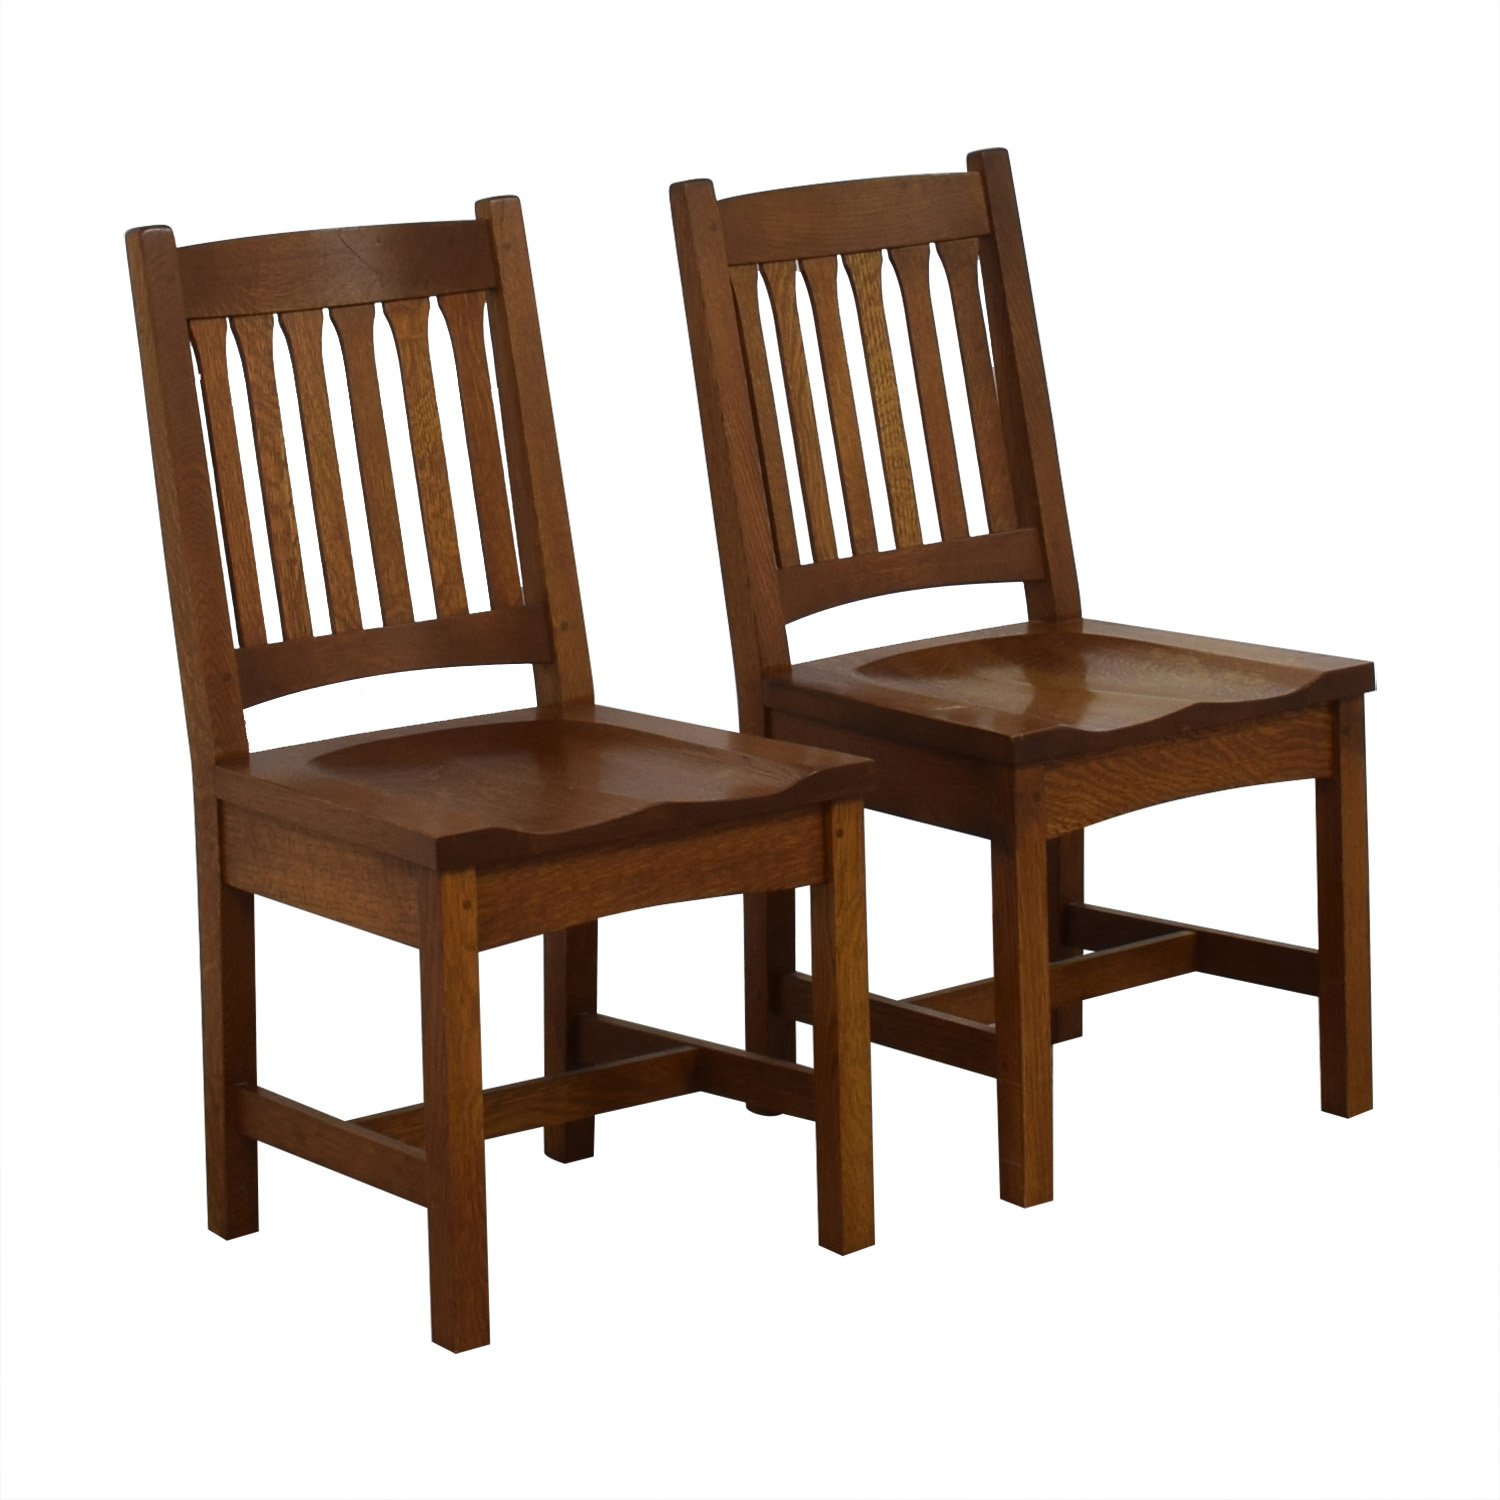 buy Stickley Audi & Co Stickley Audi & Co Handcrafted Wooden Chairs online